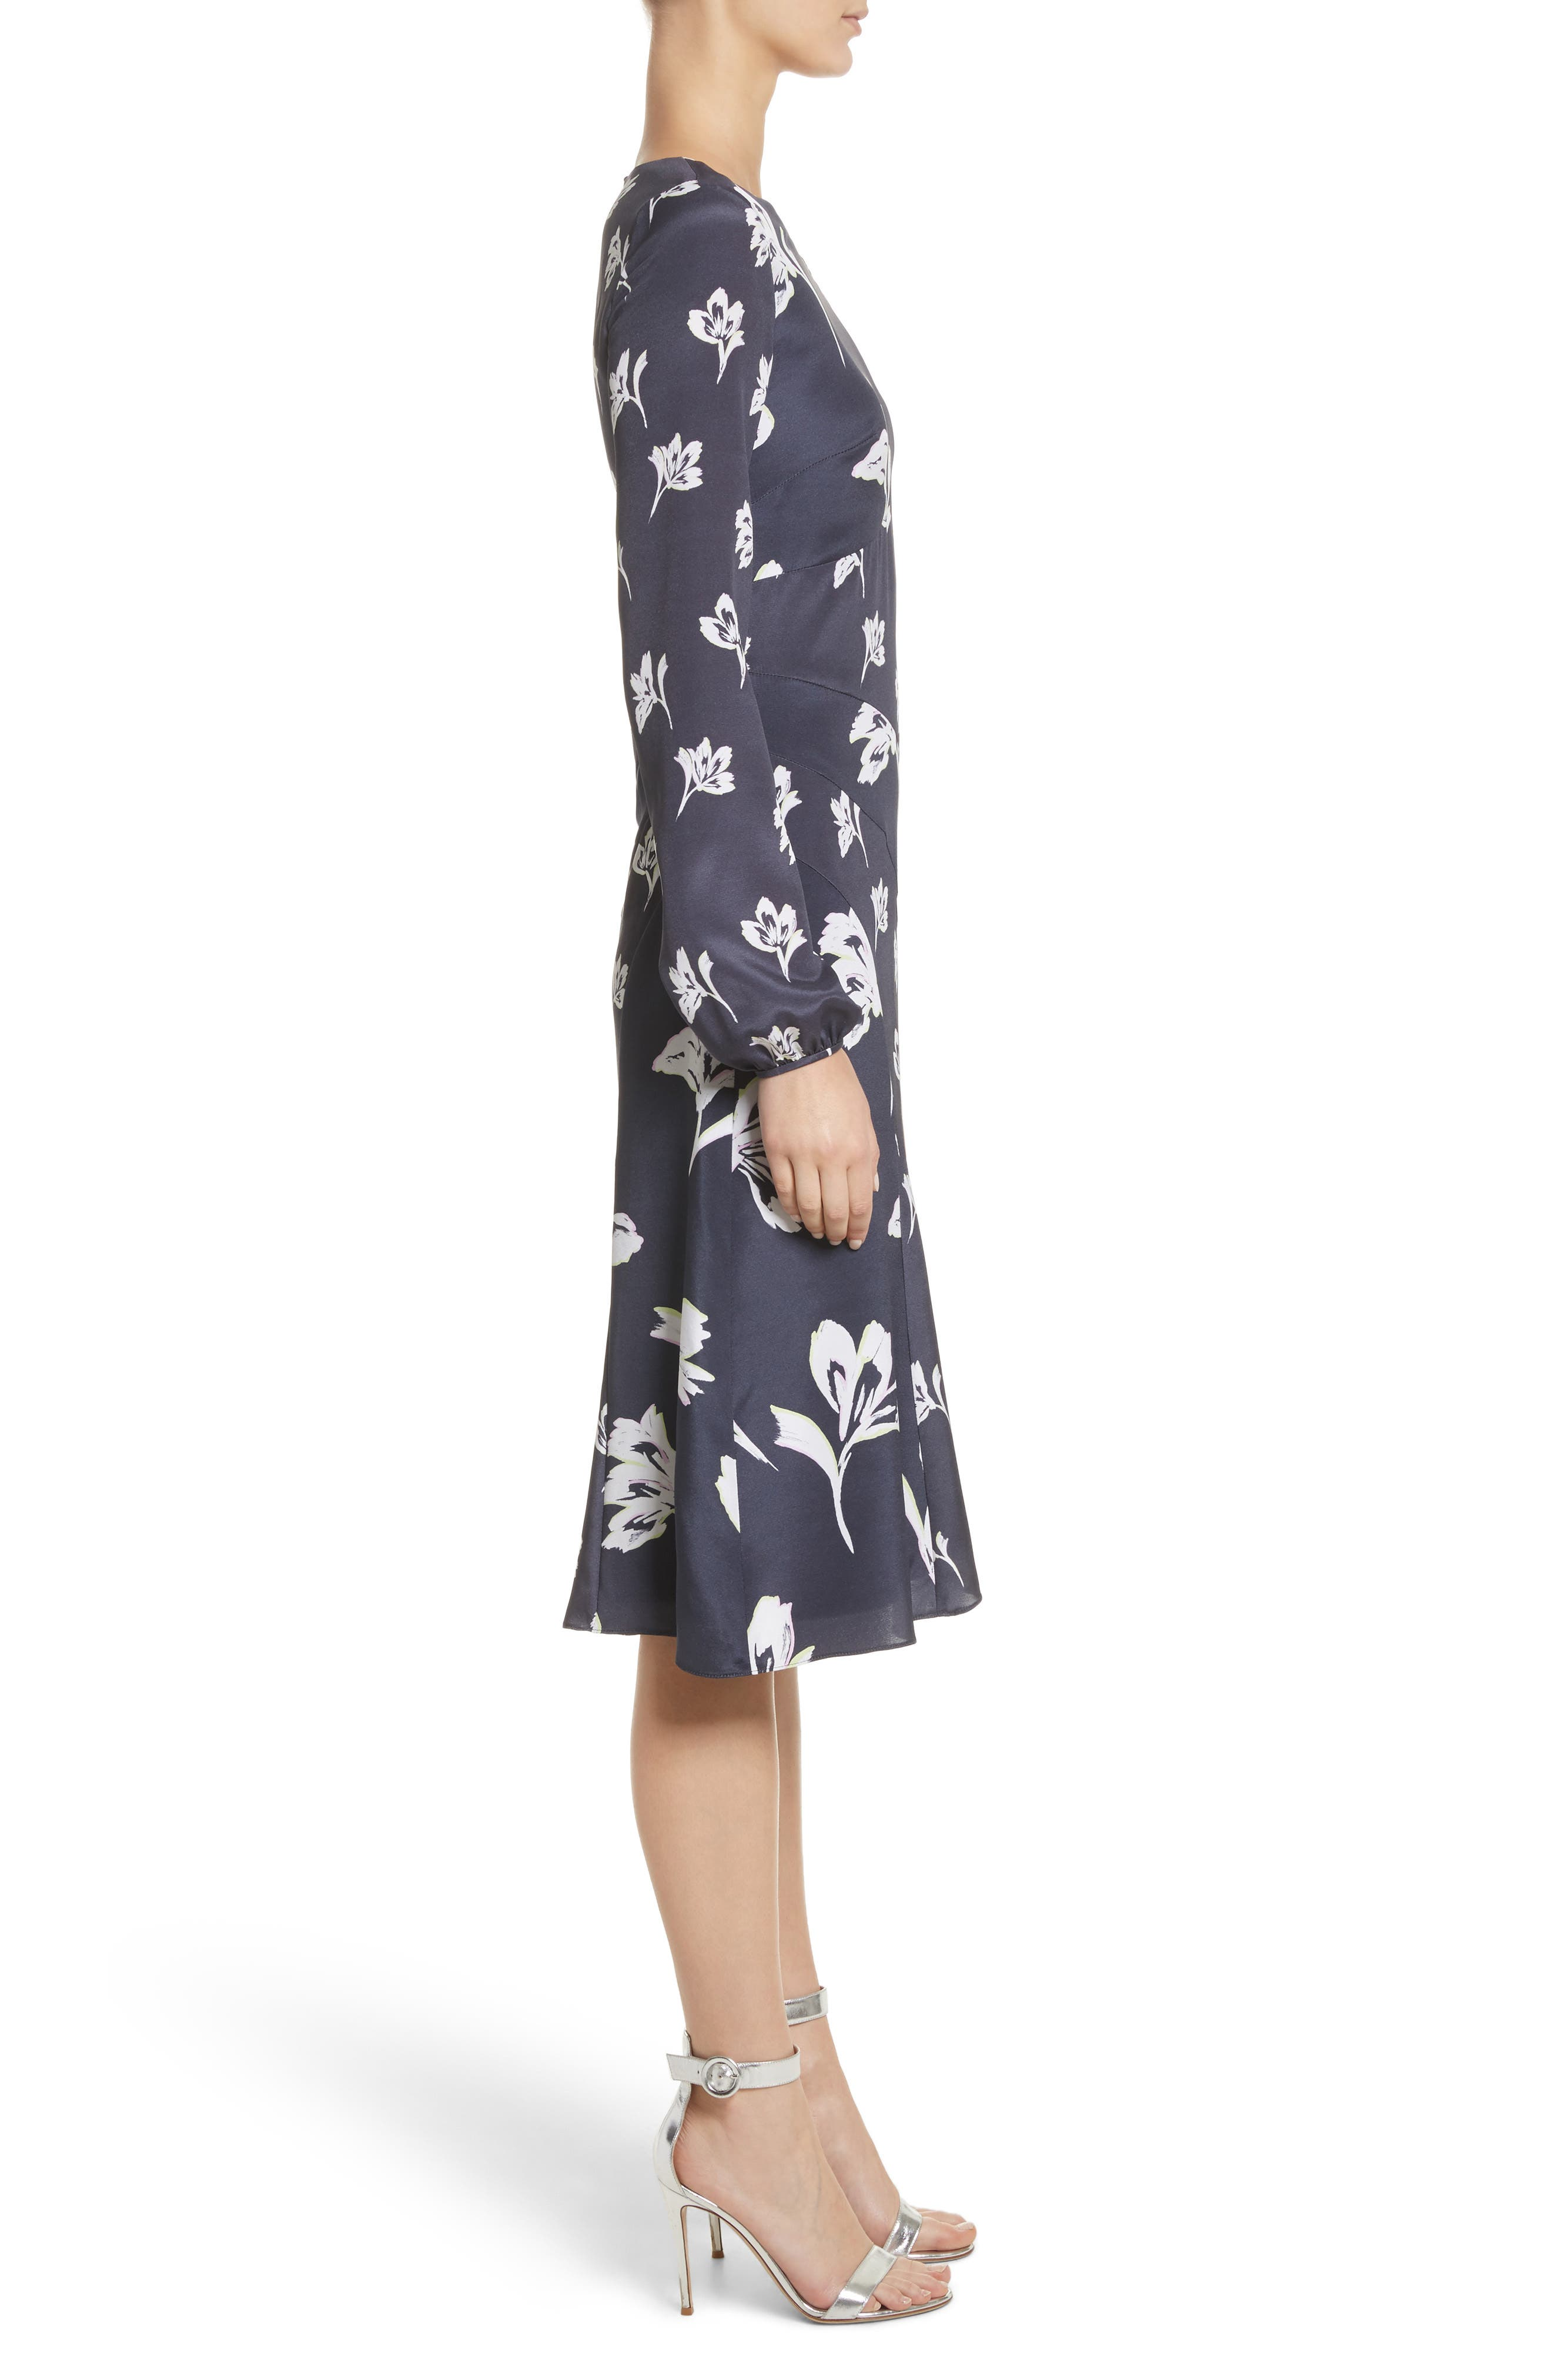 Falling Flower Print Stretch Silk Dress,                             Alternate thumbnail 3, color,                             Anthracite Multi